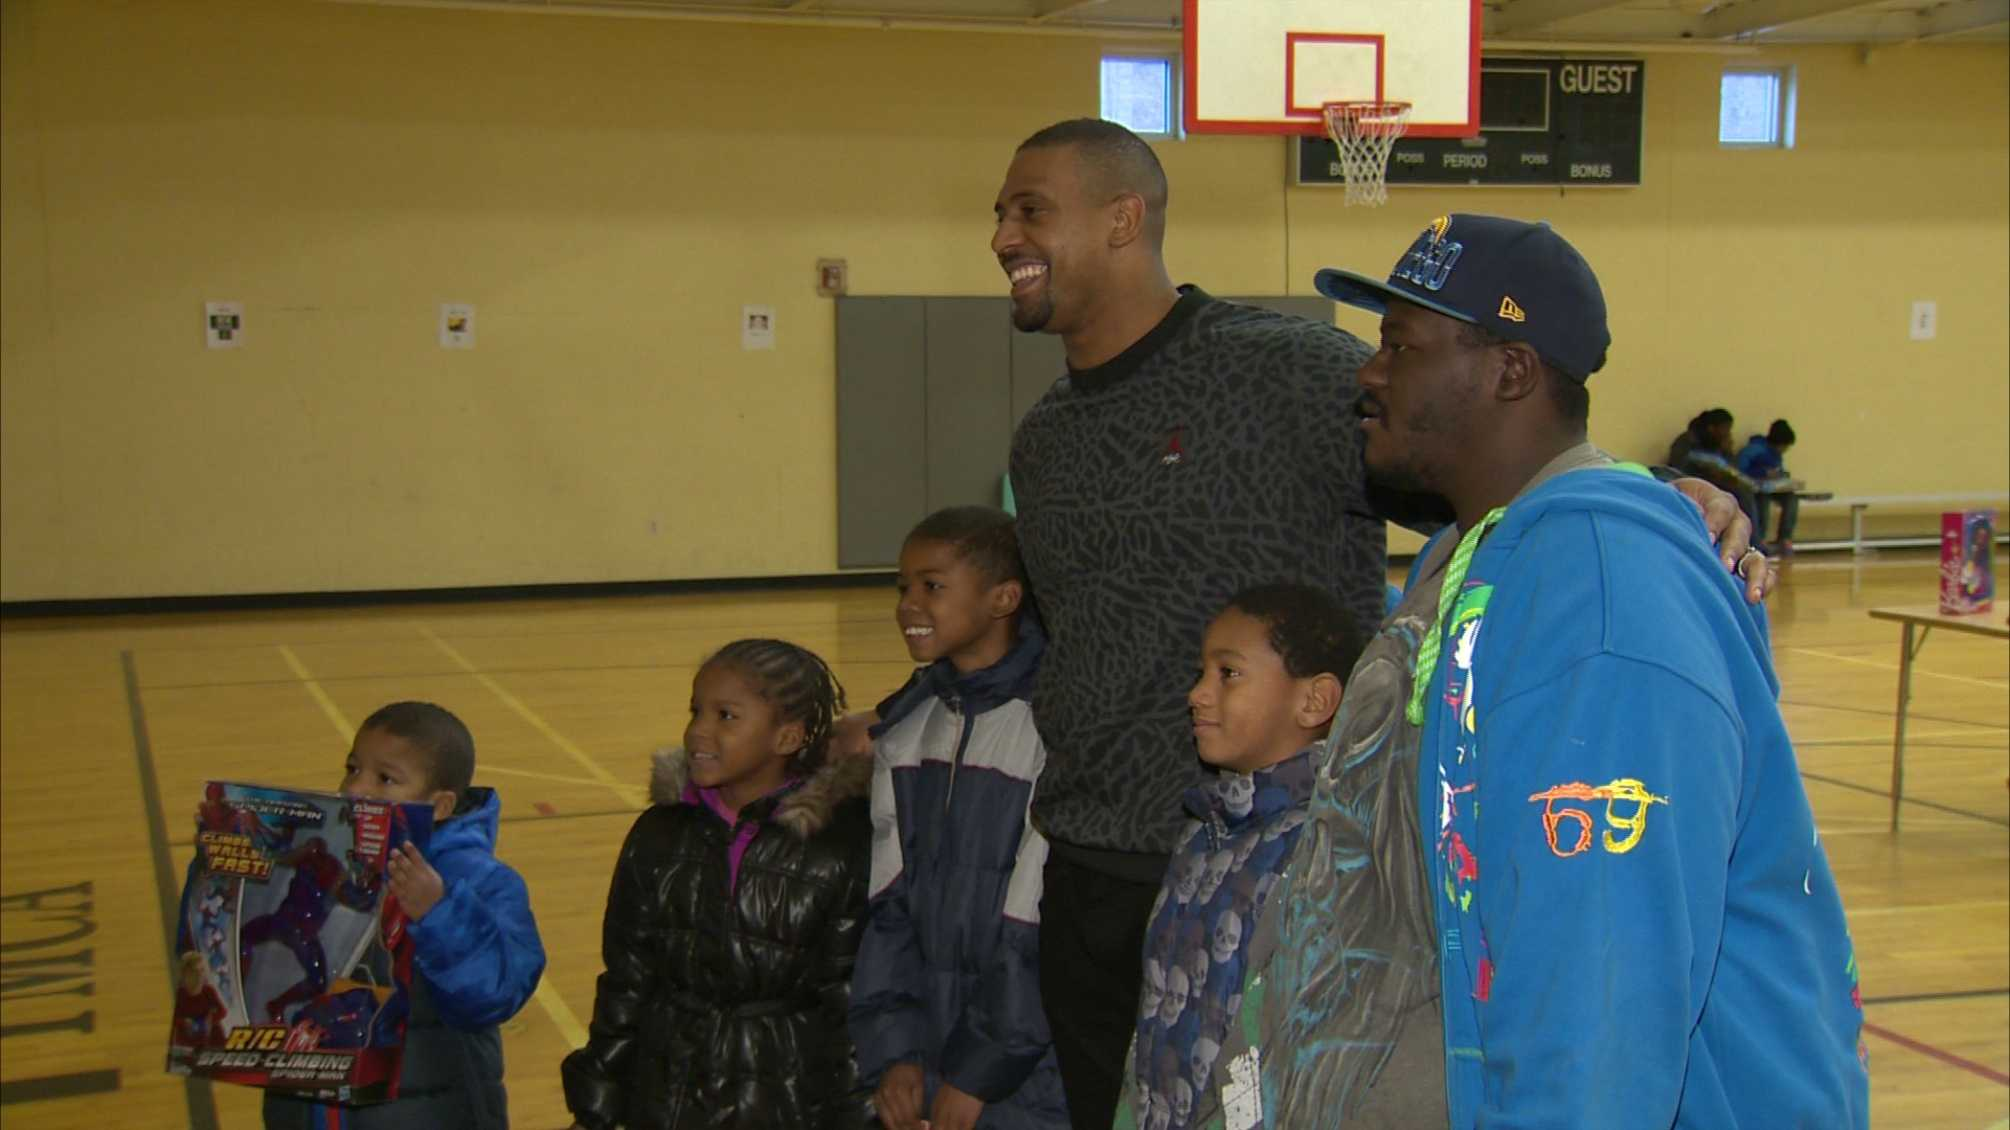 Steelers linebacker LaMarr Woodley got in the holiday spirit while throwing a party on Christmas Eve for 100 kids and their families at the Homewood-Brushton YMCA.